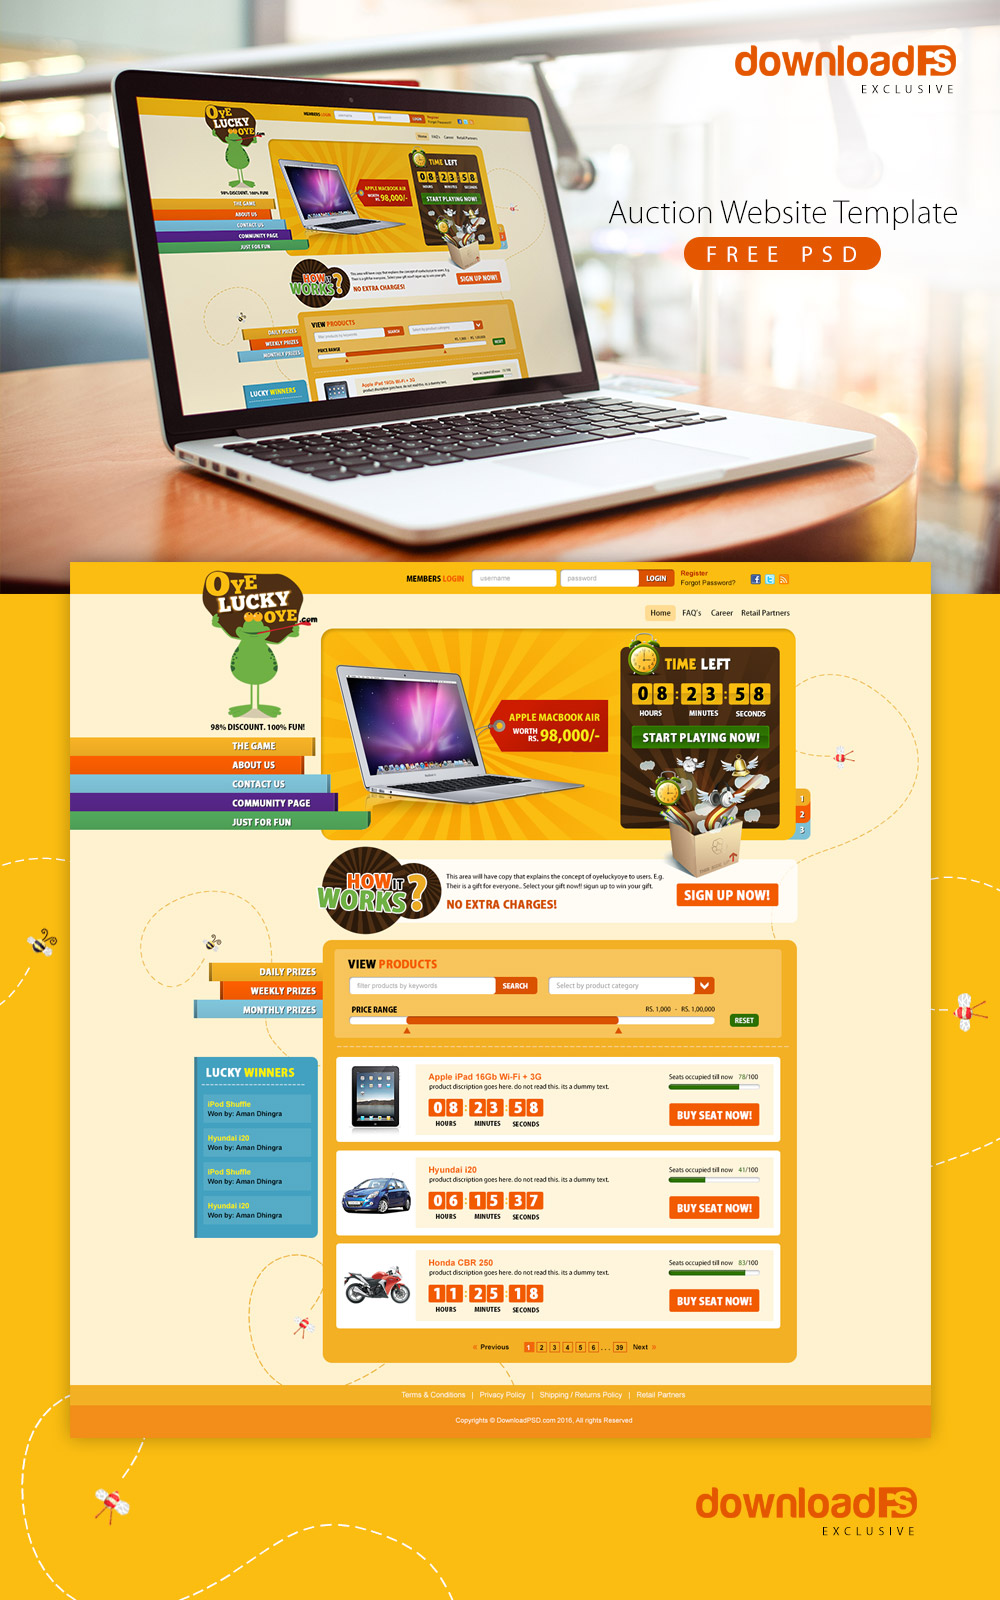 Auction Website Template Free Download